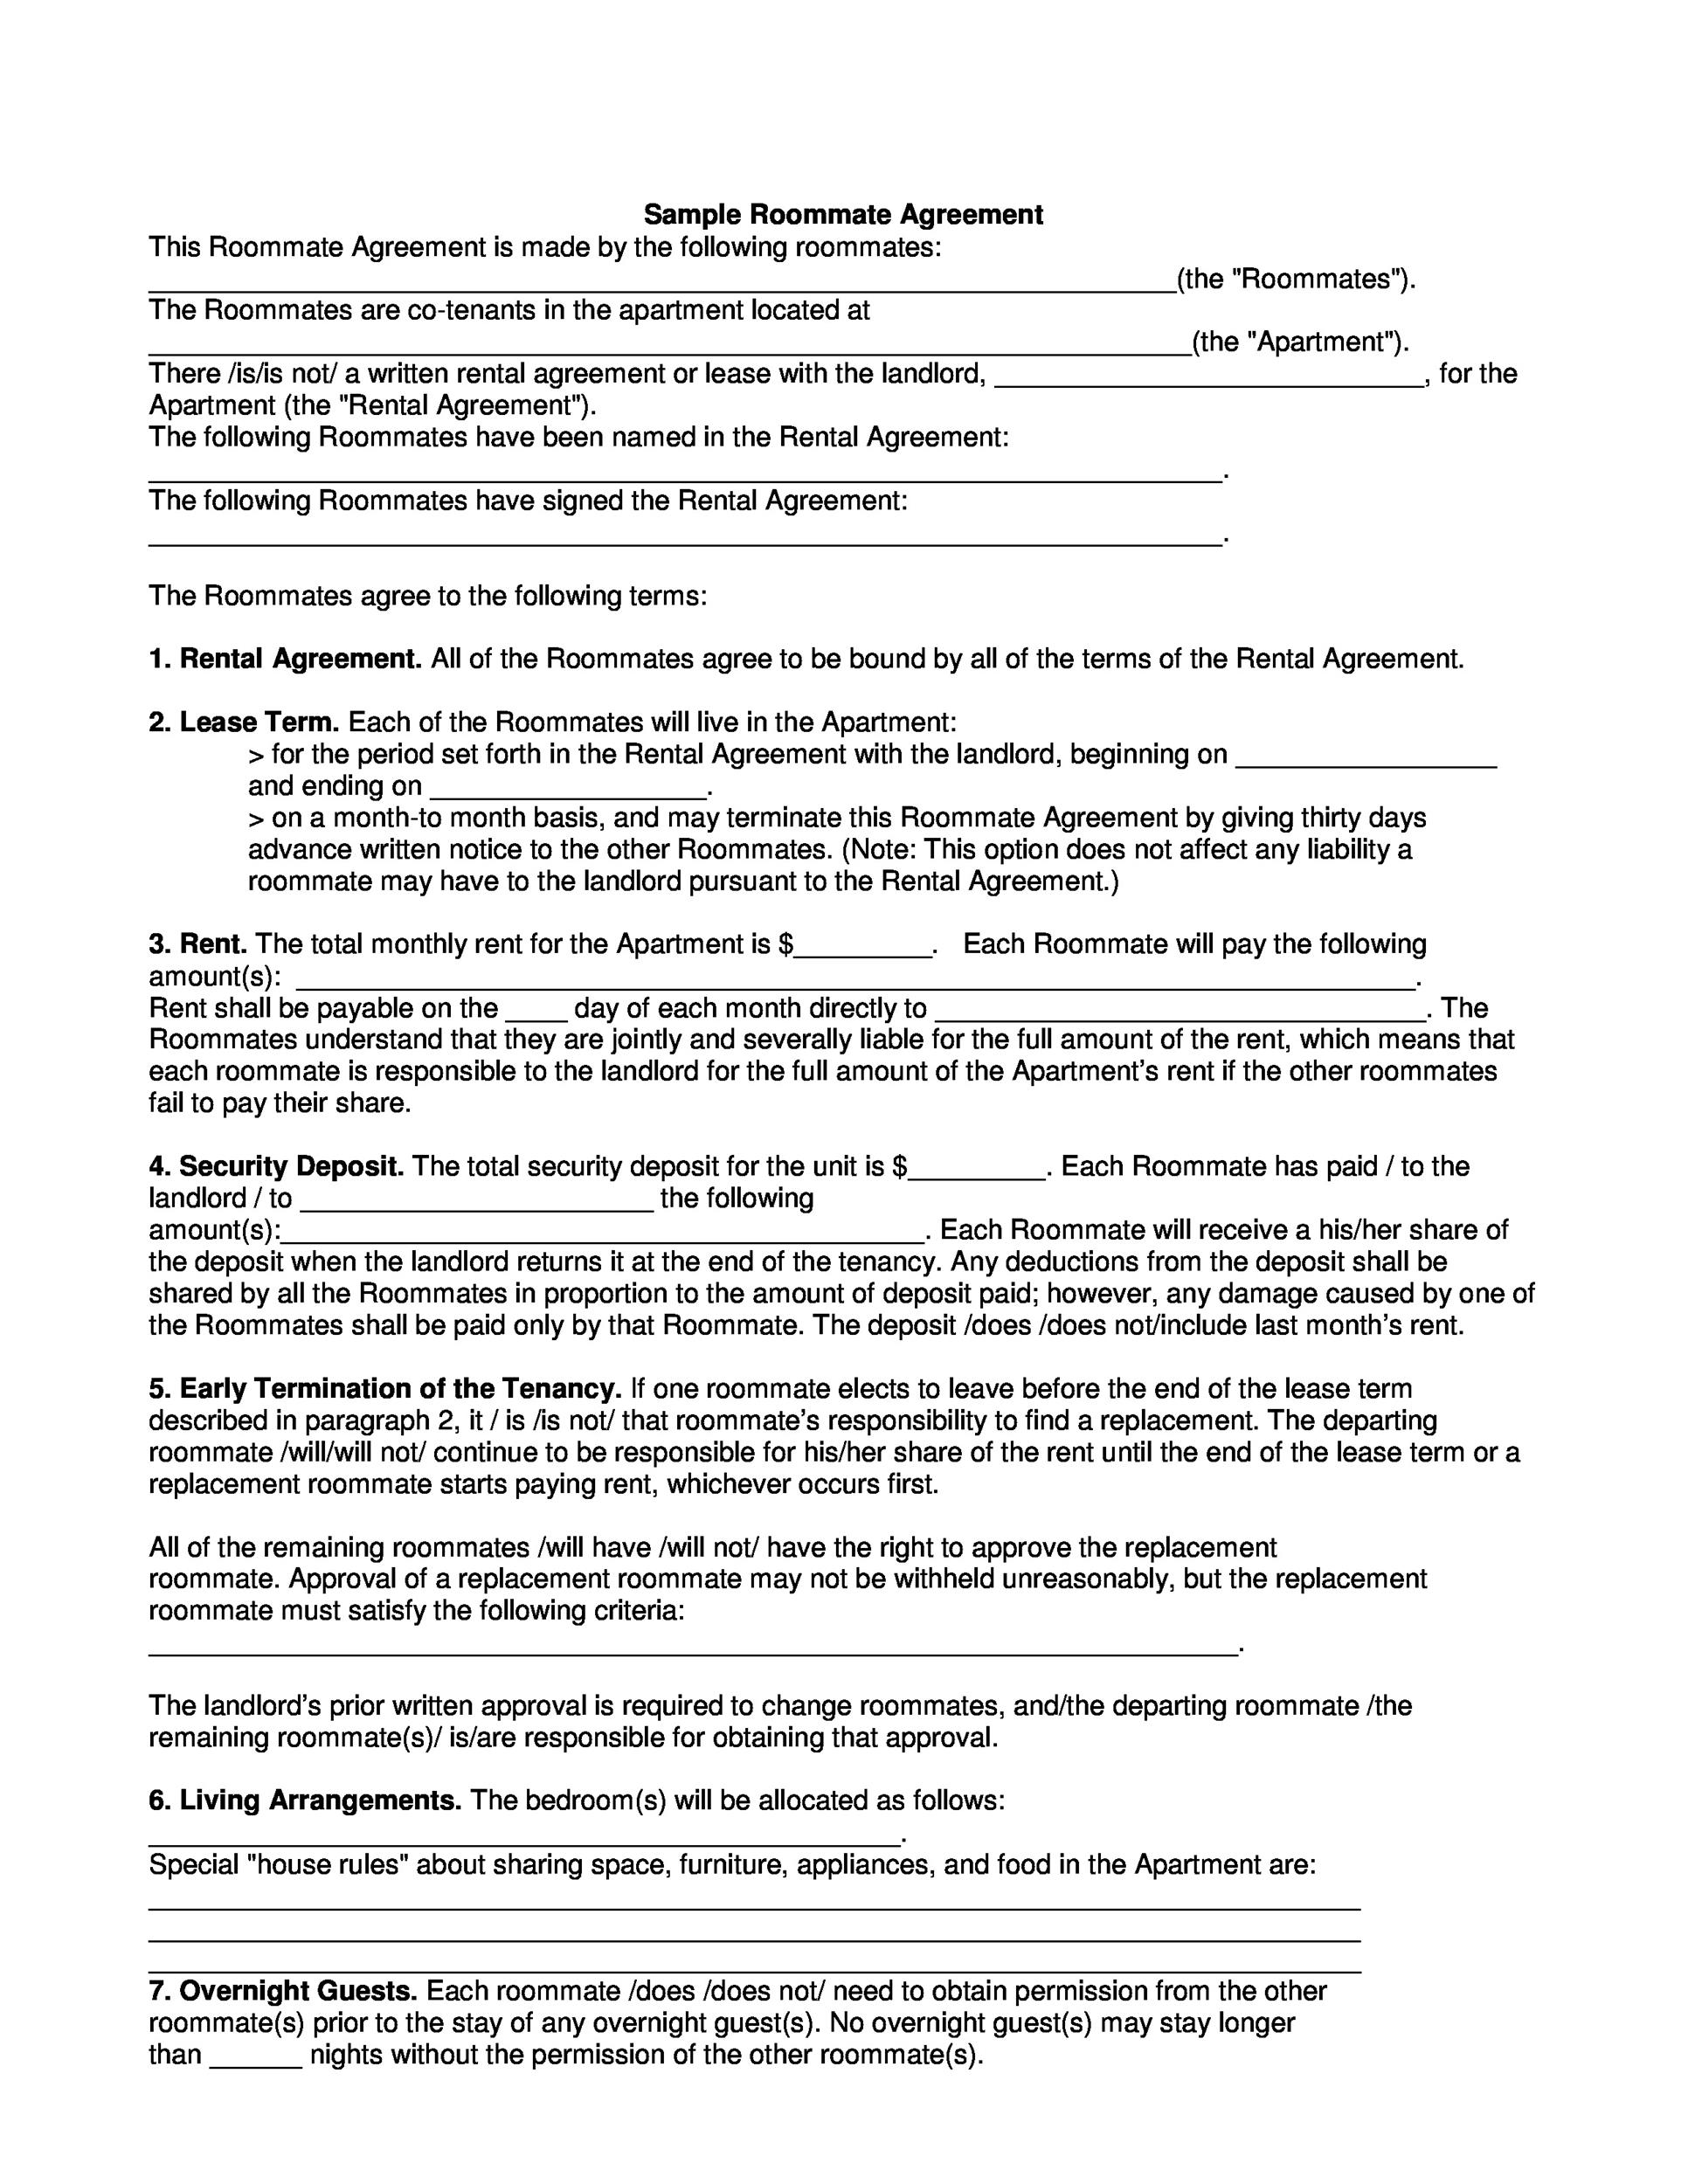 40 Free Roommate Agreement Templates Forms Word PDF – Sample Rental Agreement Word Document